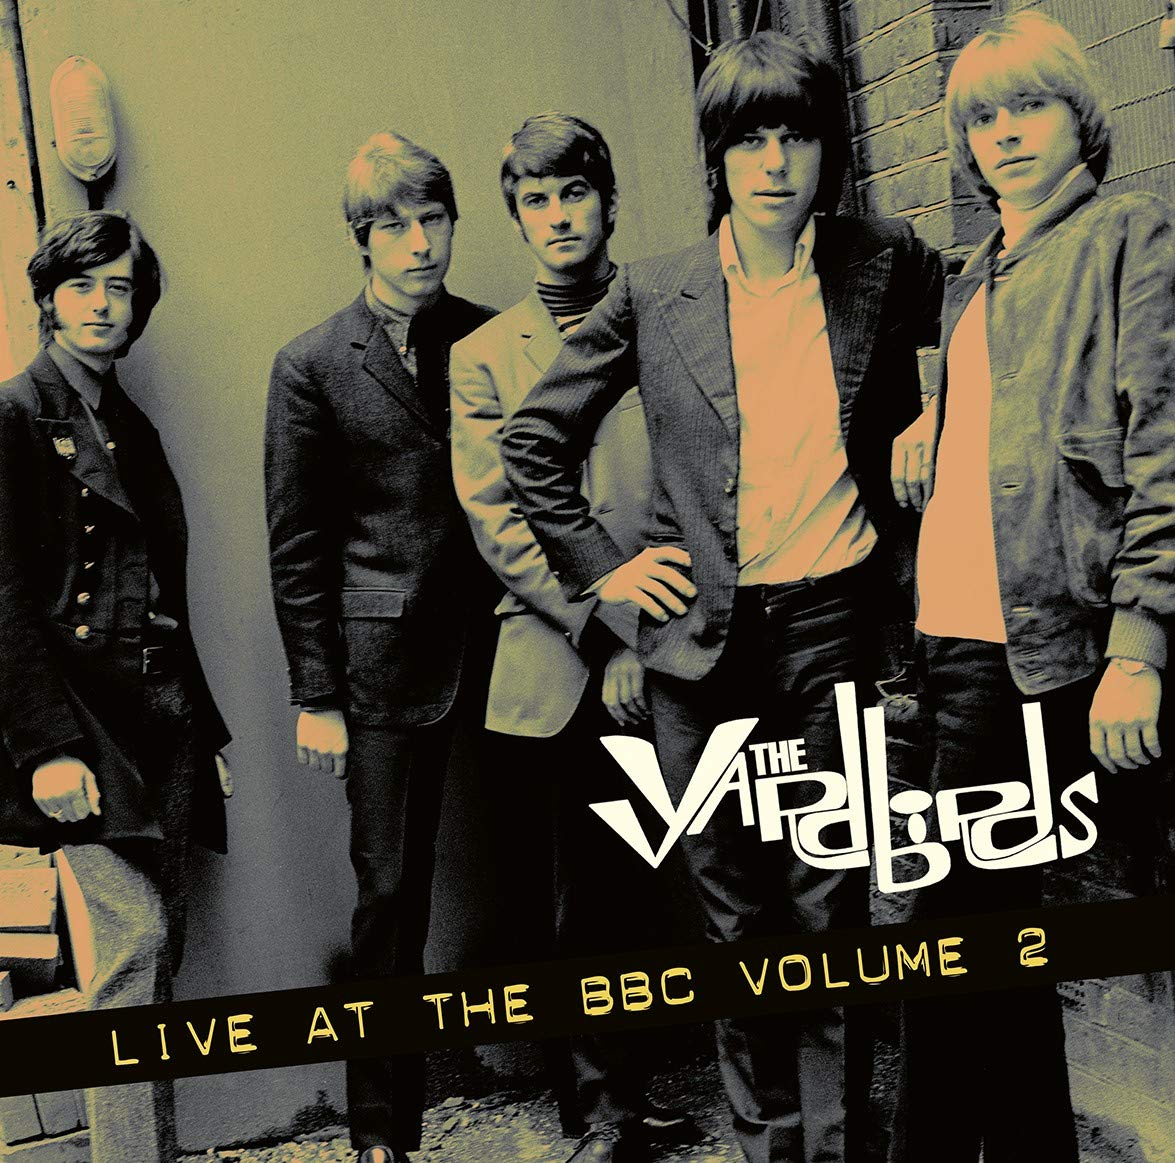 Yardbirds, The – Live At The BBC Volume 2